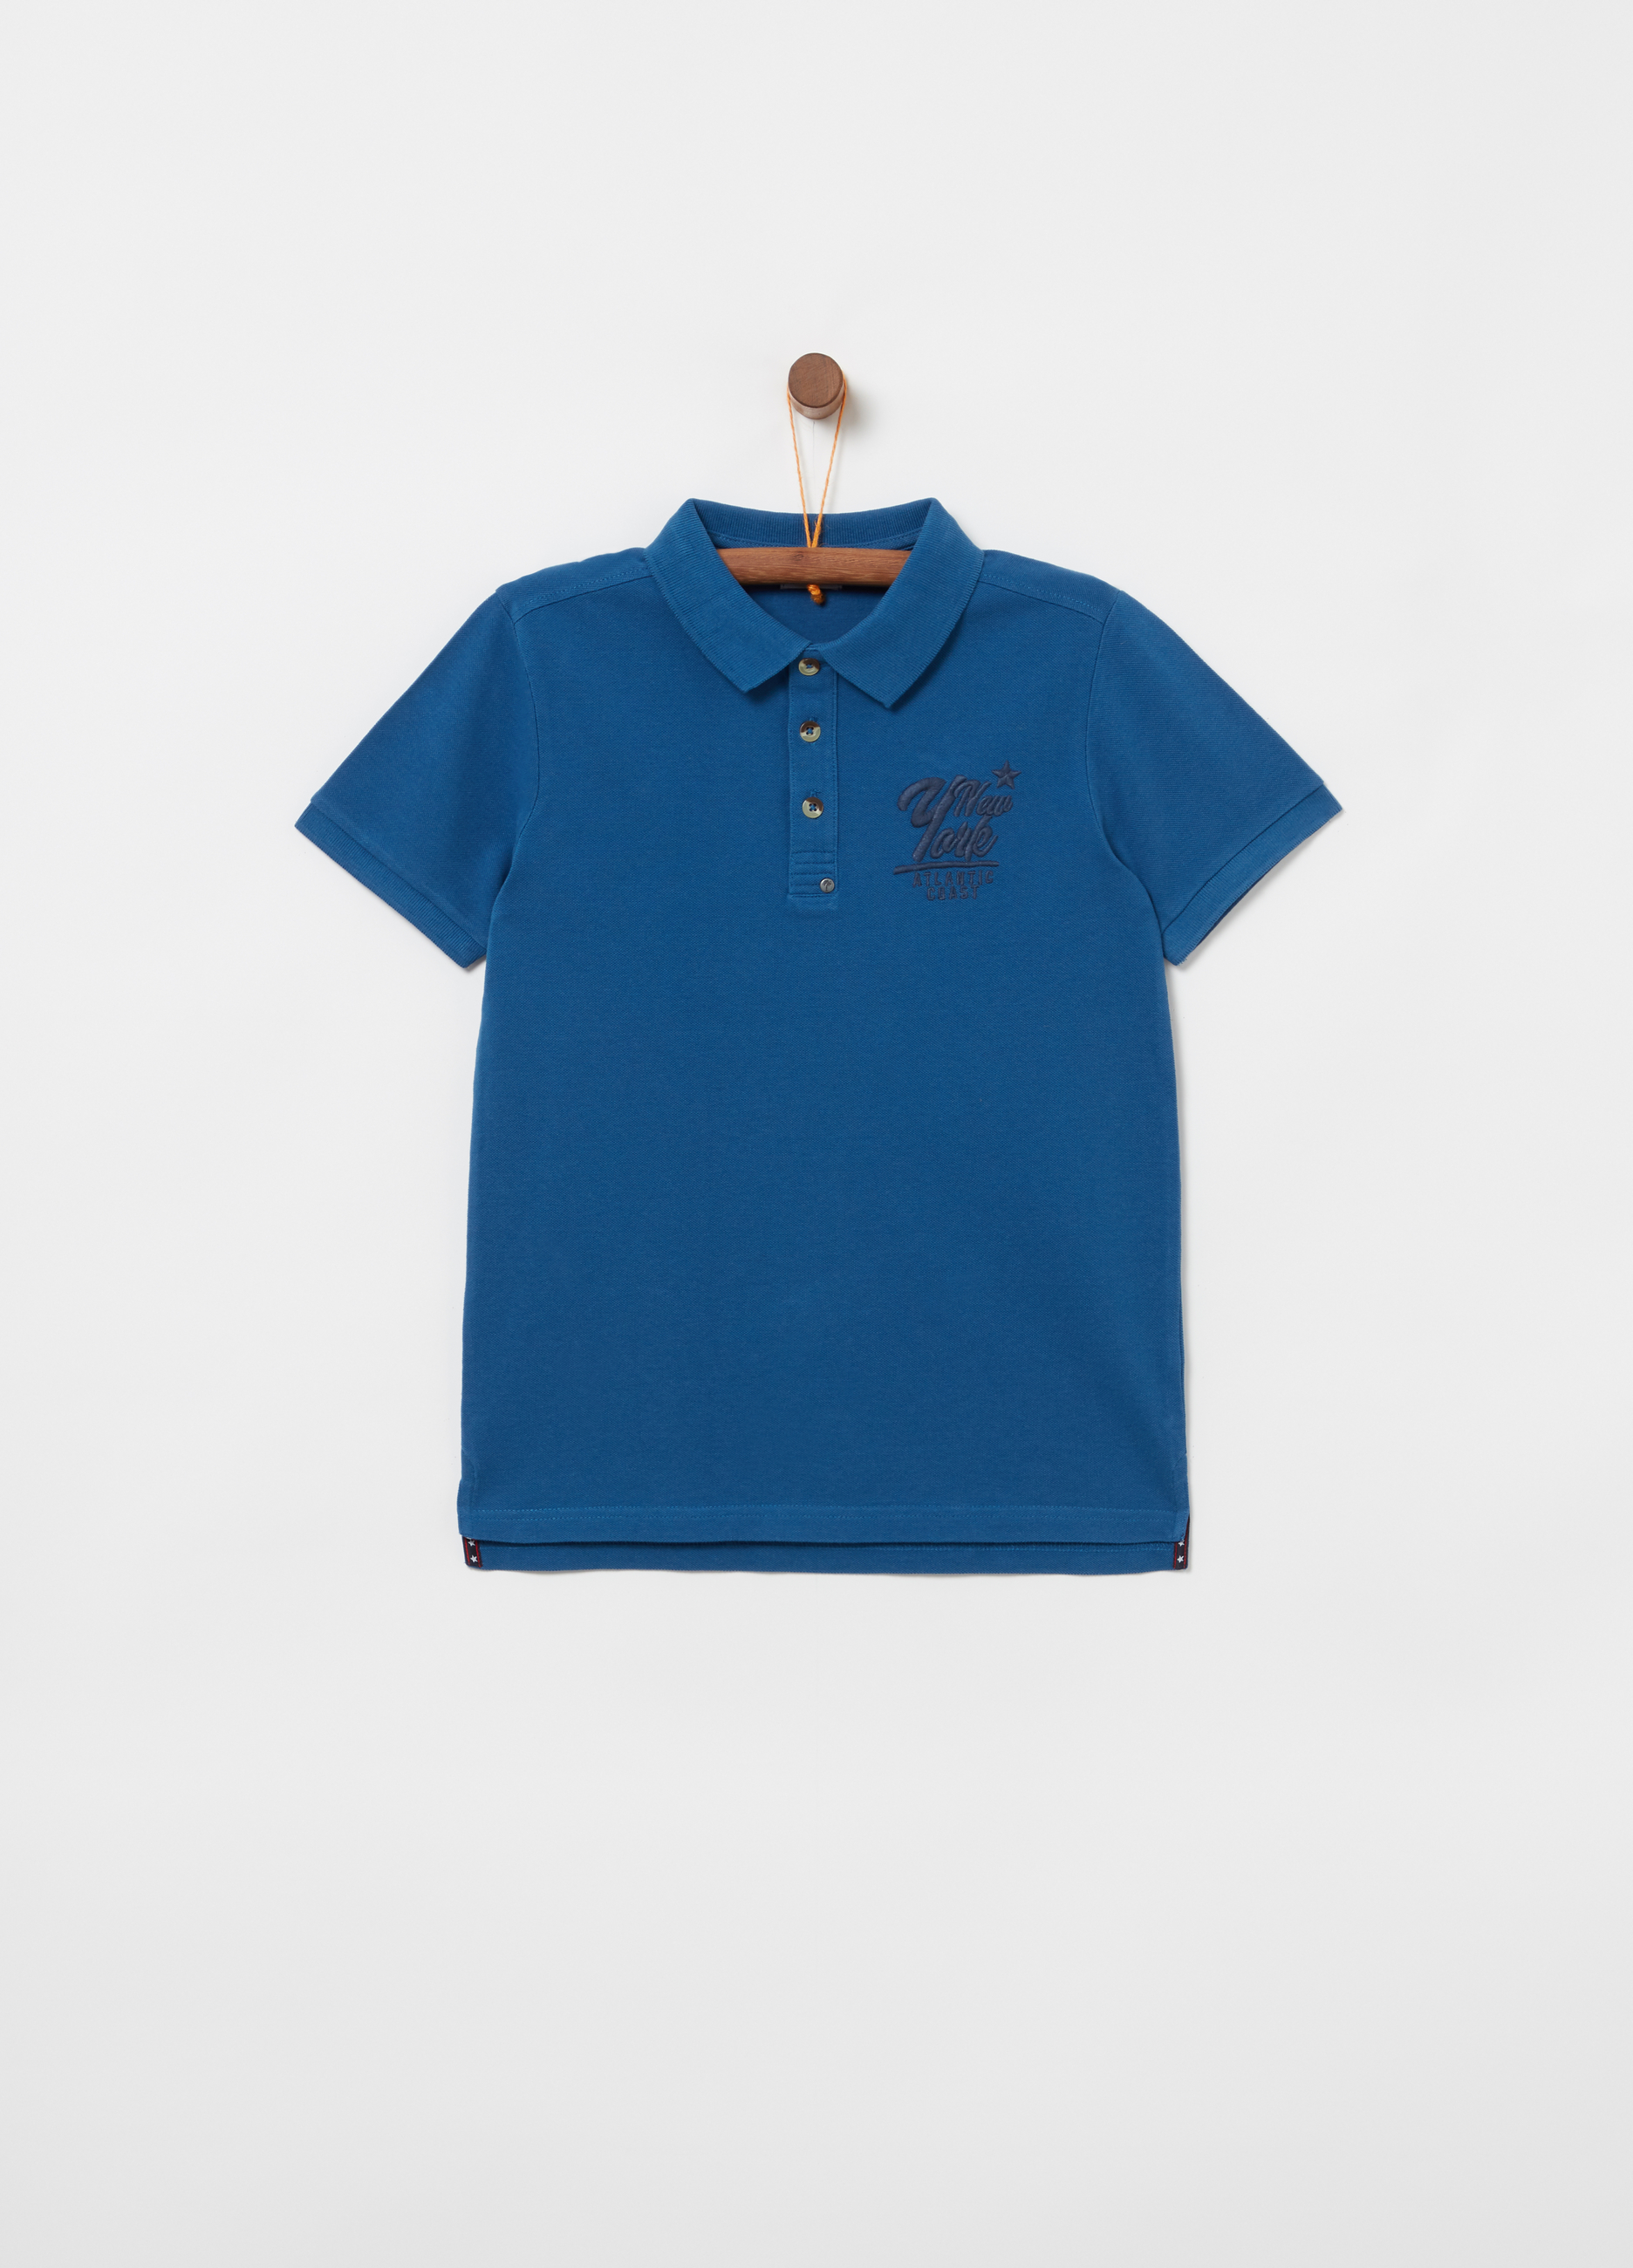 929bc85b Piquet polo shirt with embroidery over the heart | OVS